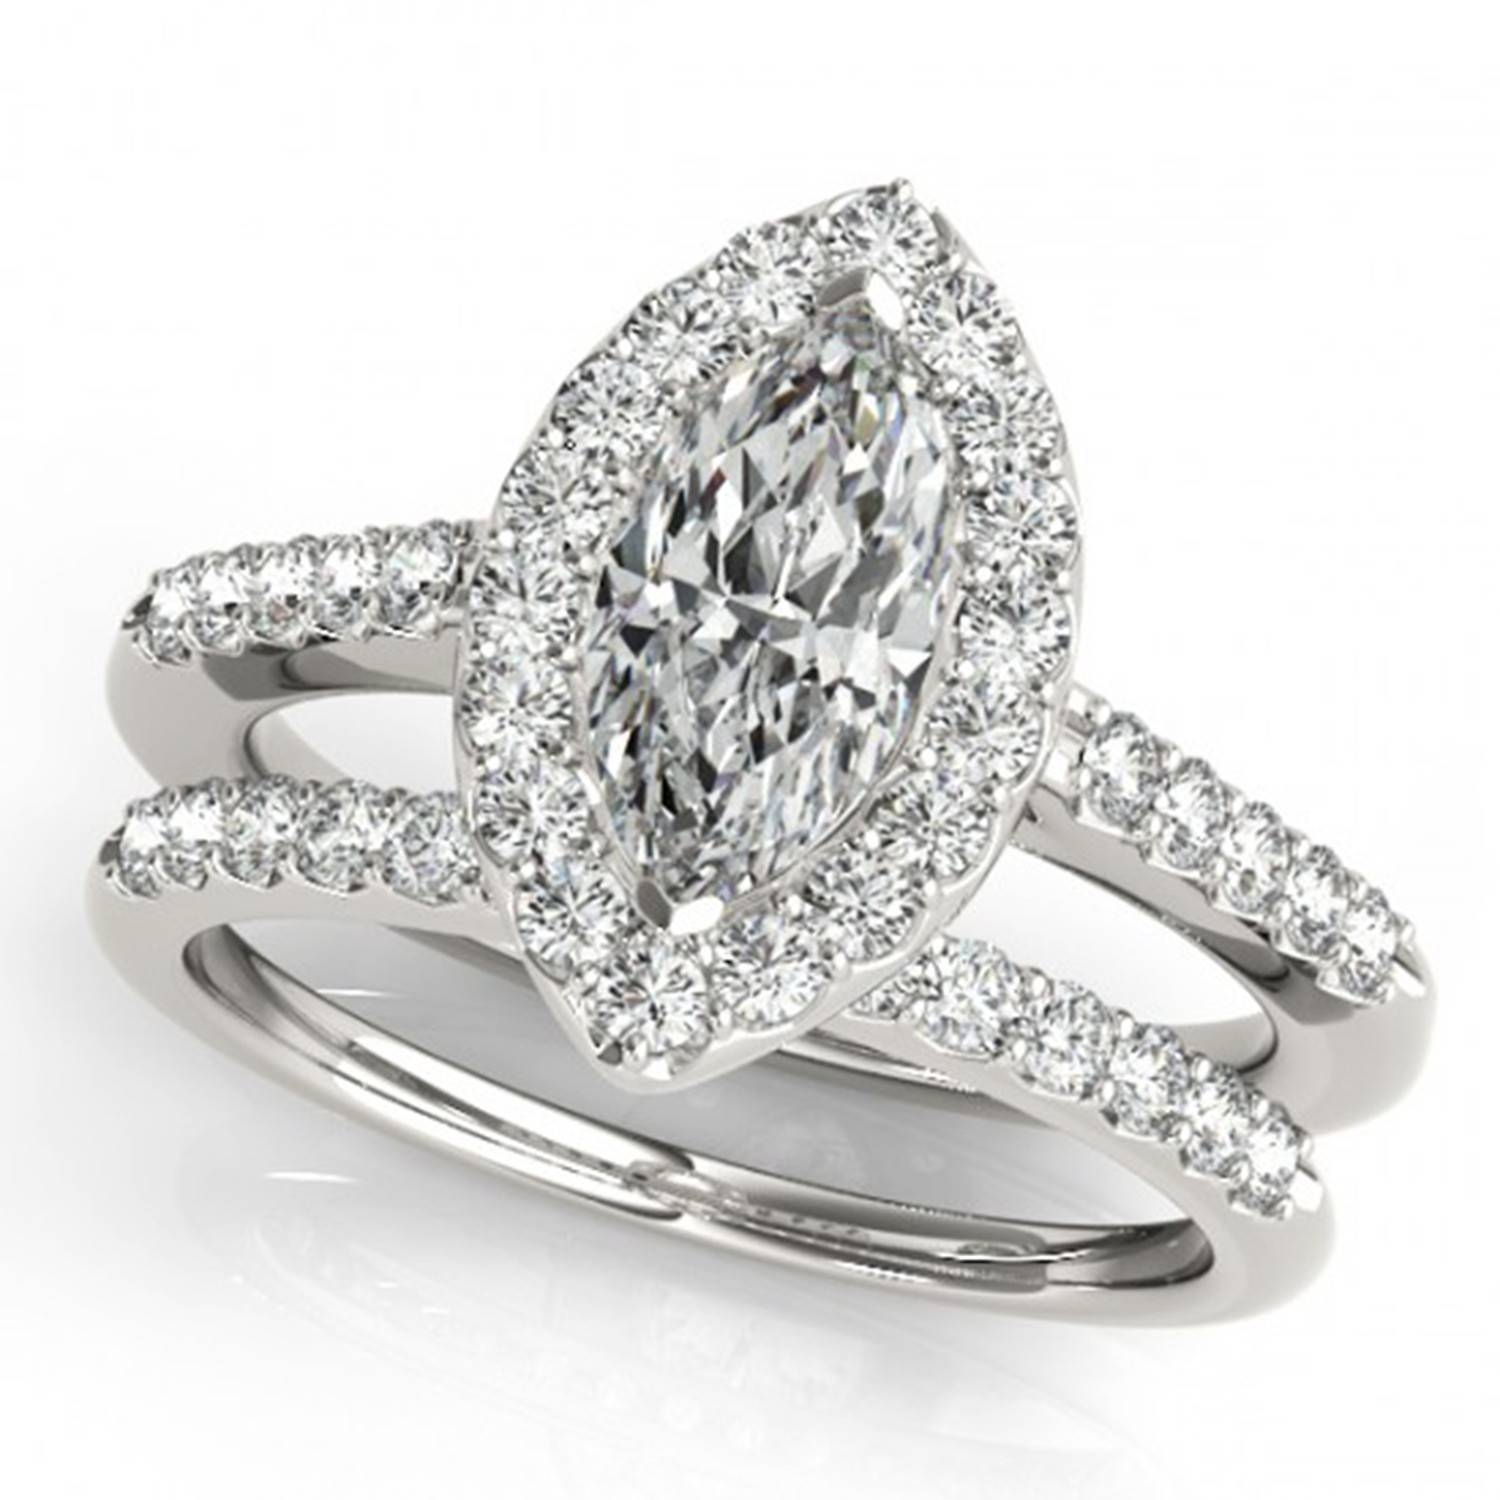 1/3 Carat Flat Sphere Marquise Diamond Sidestones Engagement Ring Within Flat Engagement Rings (View 2 of 15)